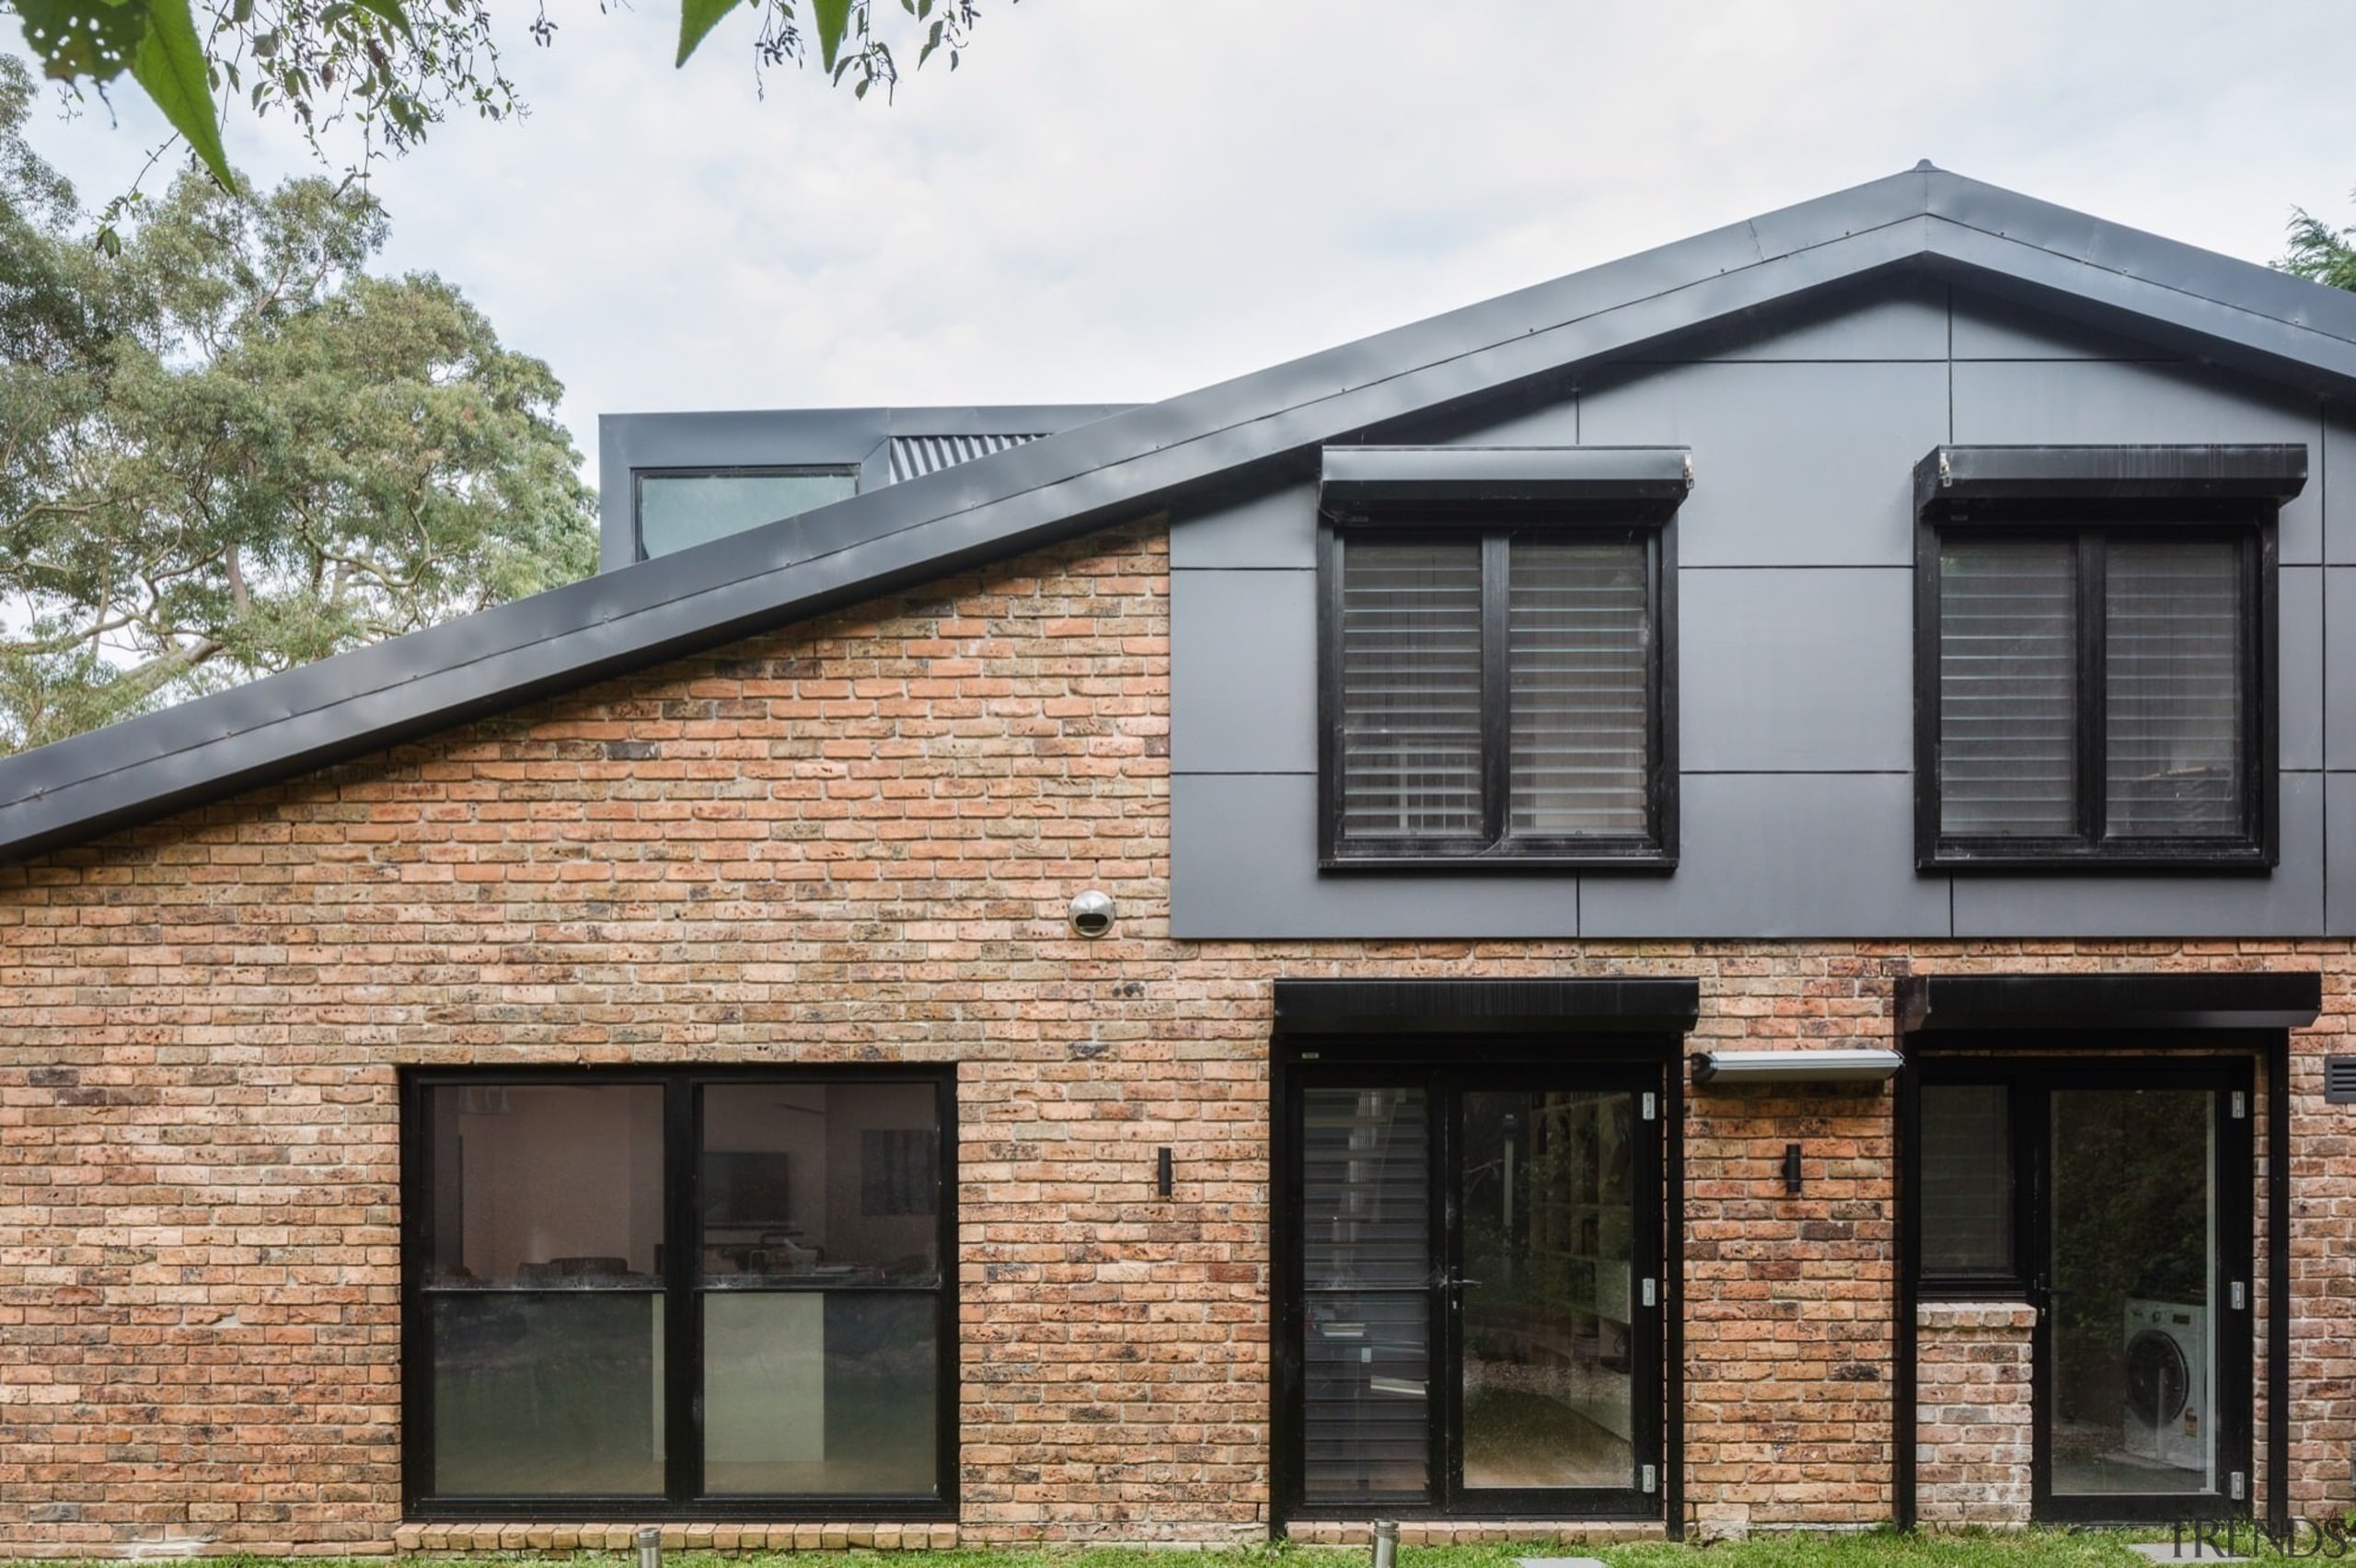 Architect: Bijl ArchitecturePhotography by Katherine Lu building, cottage, elevation, facade, home, house, property, real estate, residential area, roof, siding, window, black